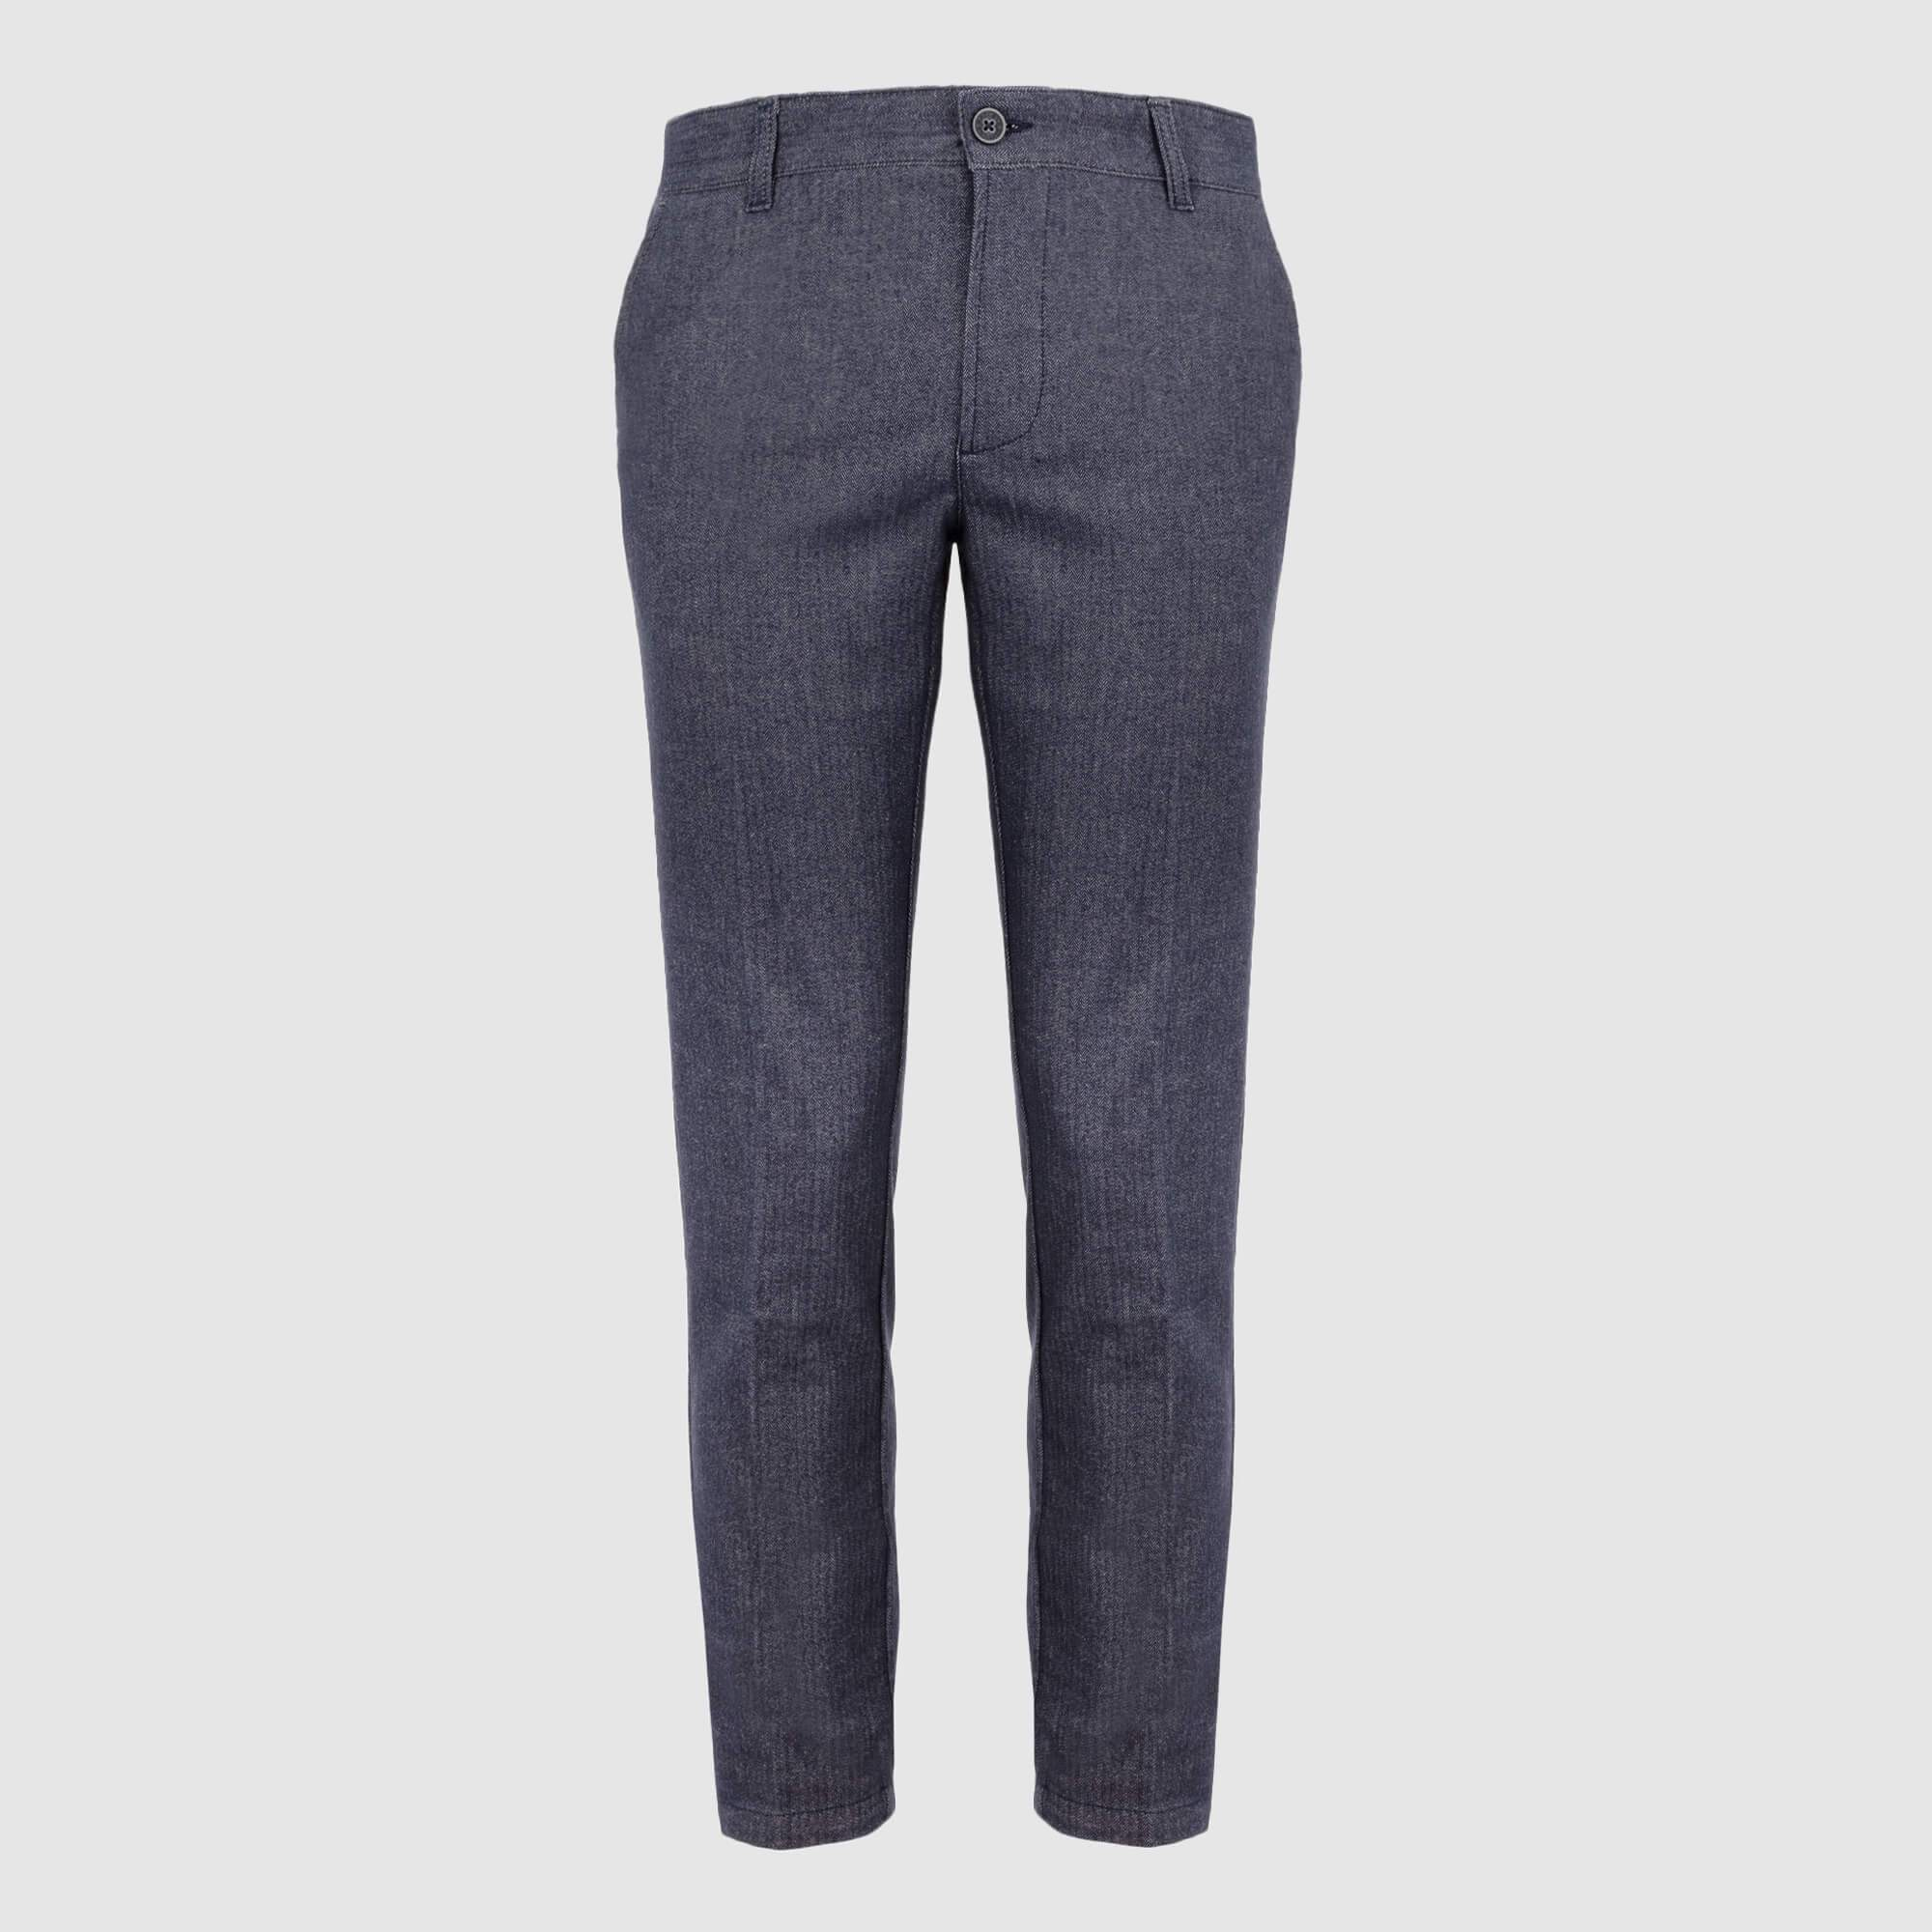 Pantalón chino de espiga regular fit 921020/60